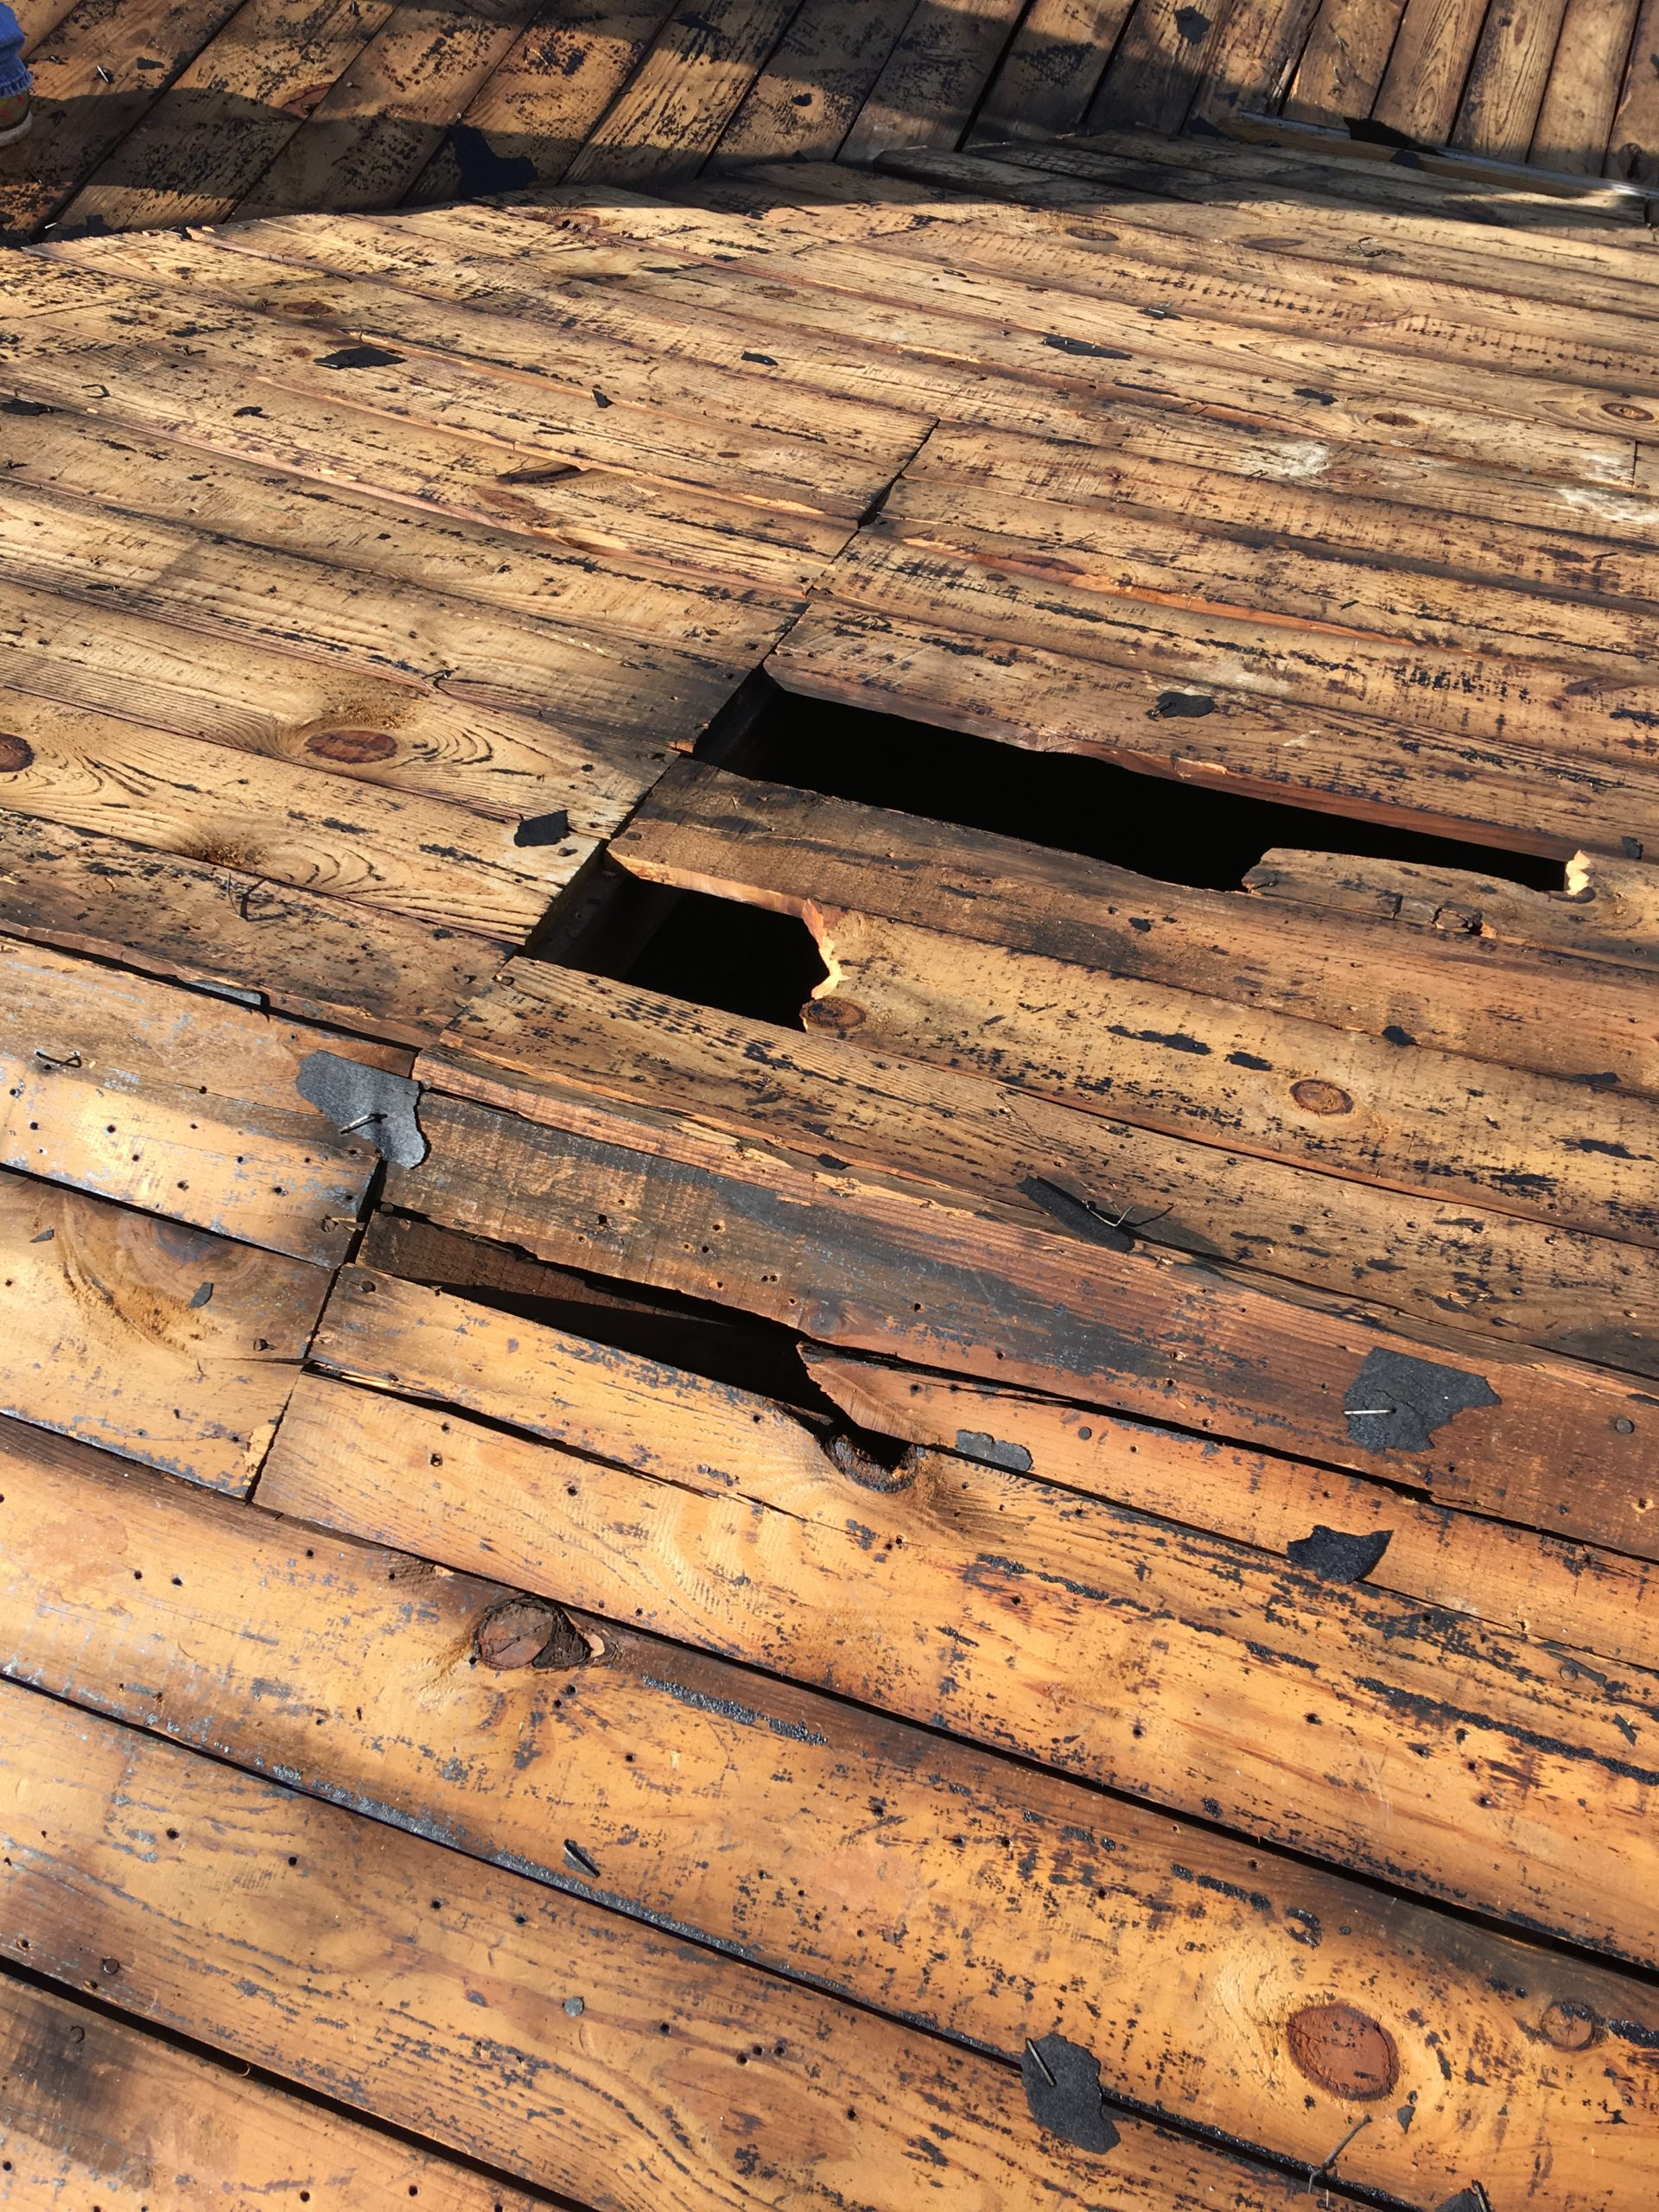 This is a view of the deck boards  with areas of missing boards.